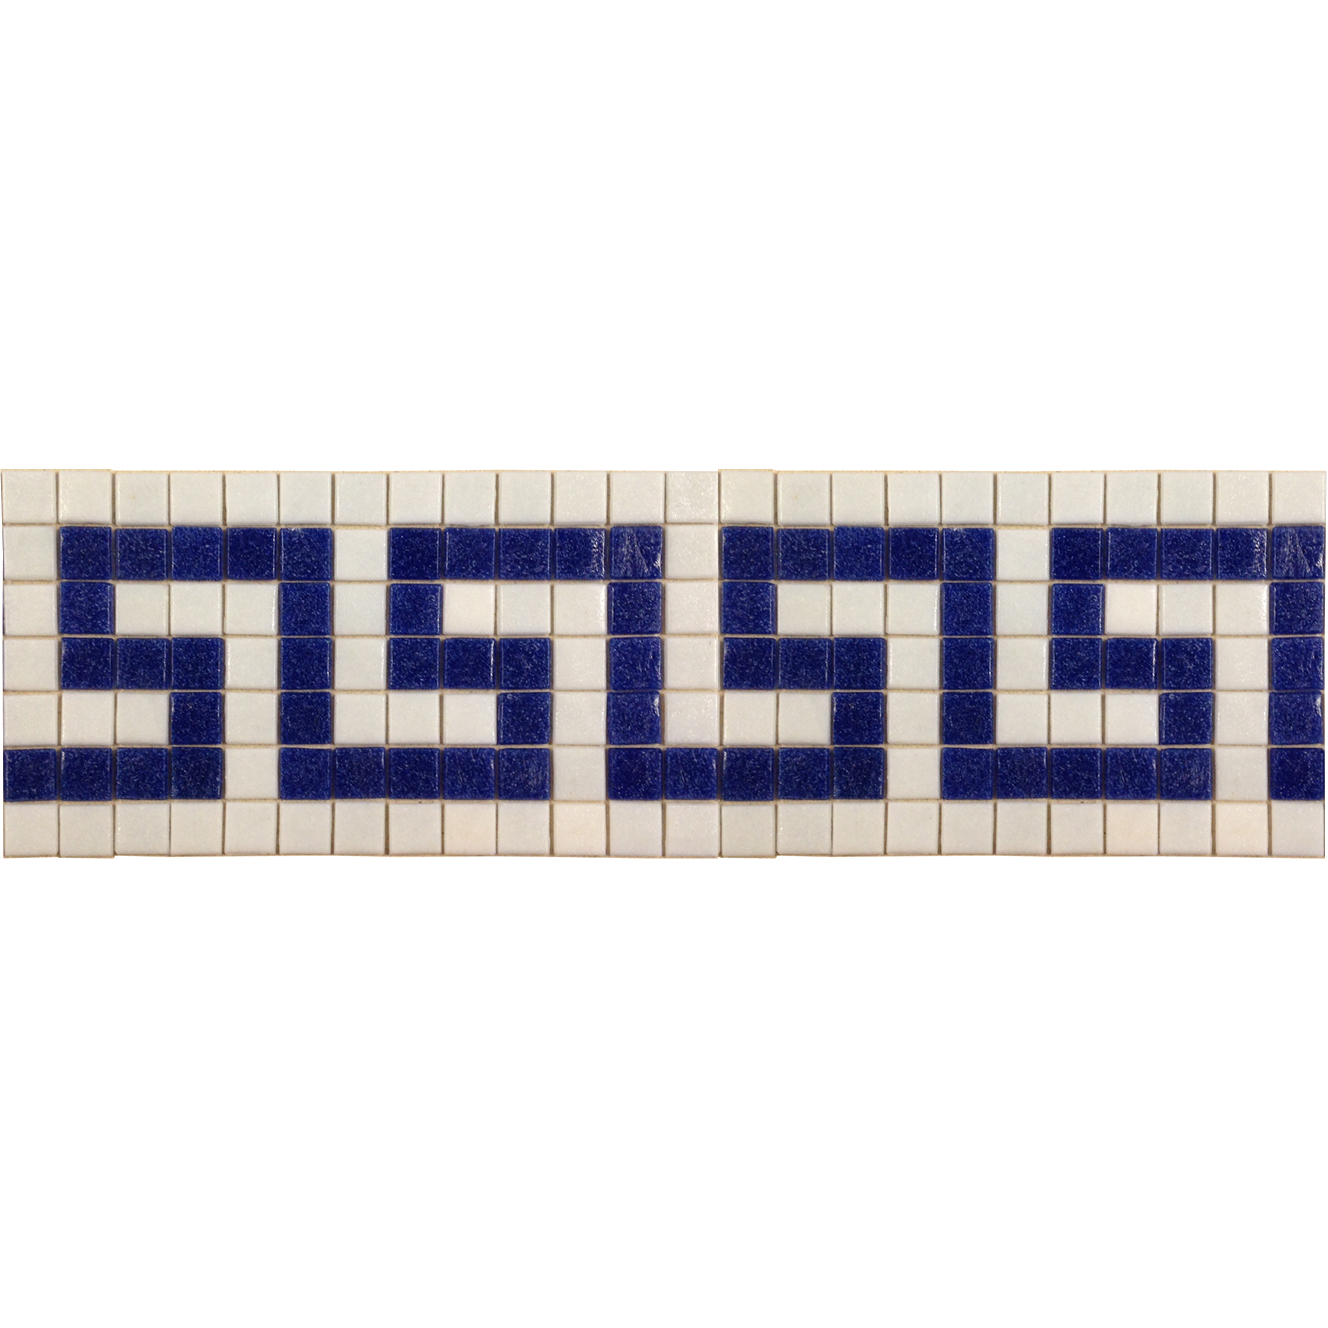 "Greek Key 5 Glass Mosaic Waterline or Border 5.5"" High, 1 Lineal Foot"